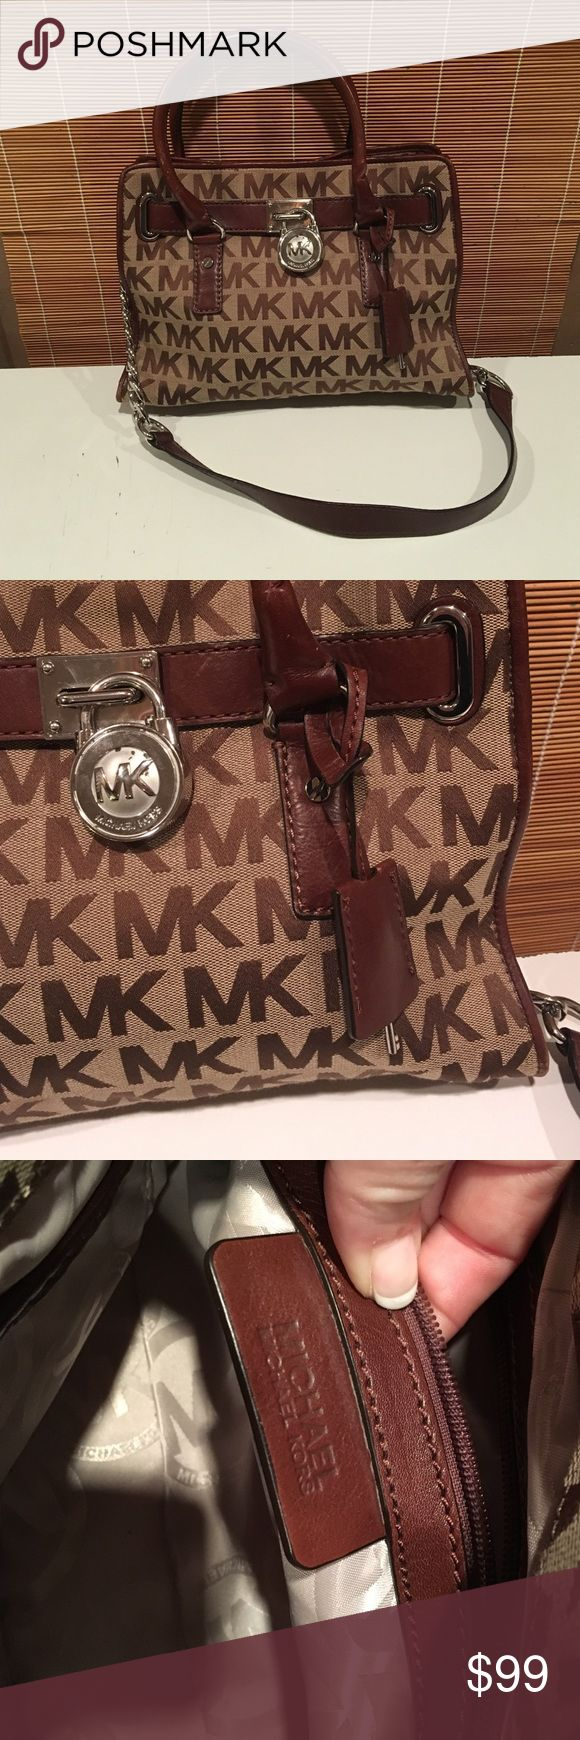 MK HAMILTON great condition Authentic Michael Coors Hamilton bag with silver hardware brown and tan. A little squished from being in the closet but in excellent condition and only used a couple of times. Has smaller leather handles and longer leather and silver chain strap for easy carrying. Michael Kors Bags Shoulder Bags